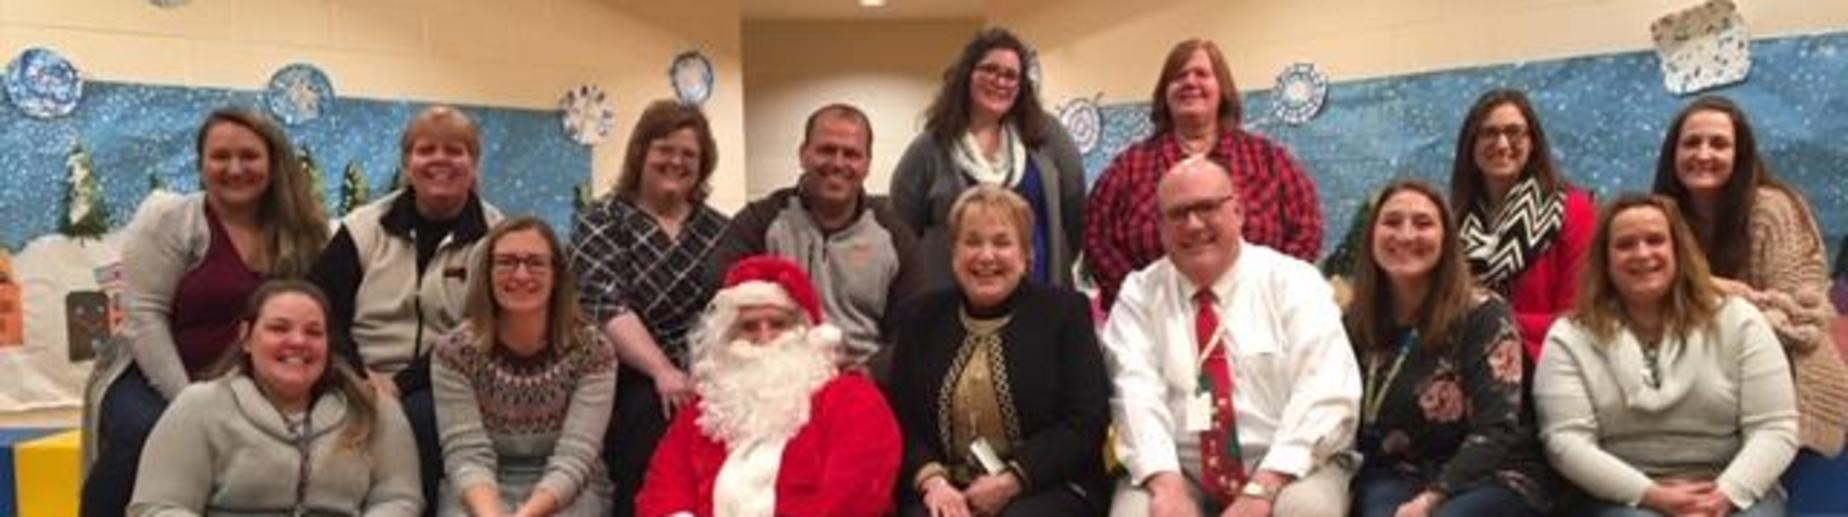 North Staff w/ Santa